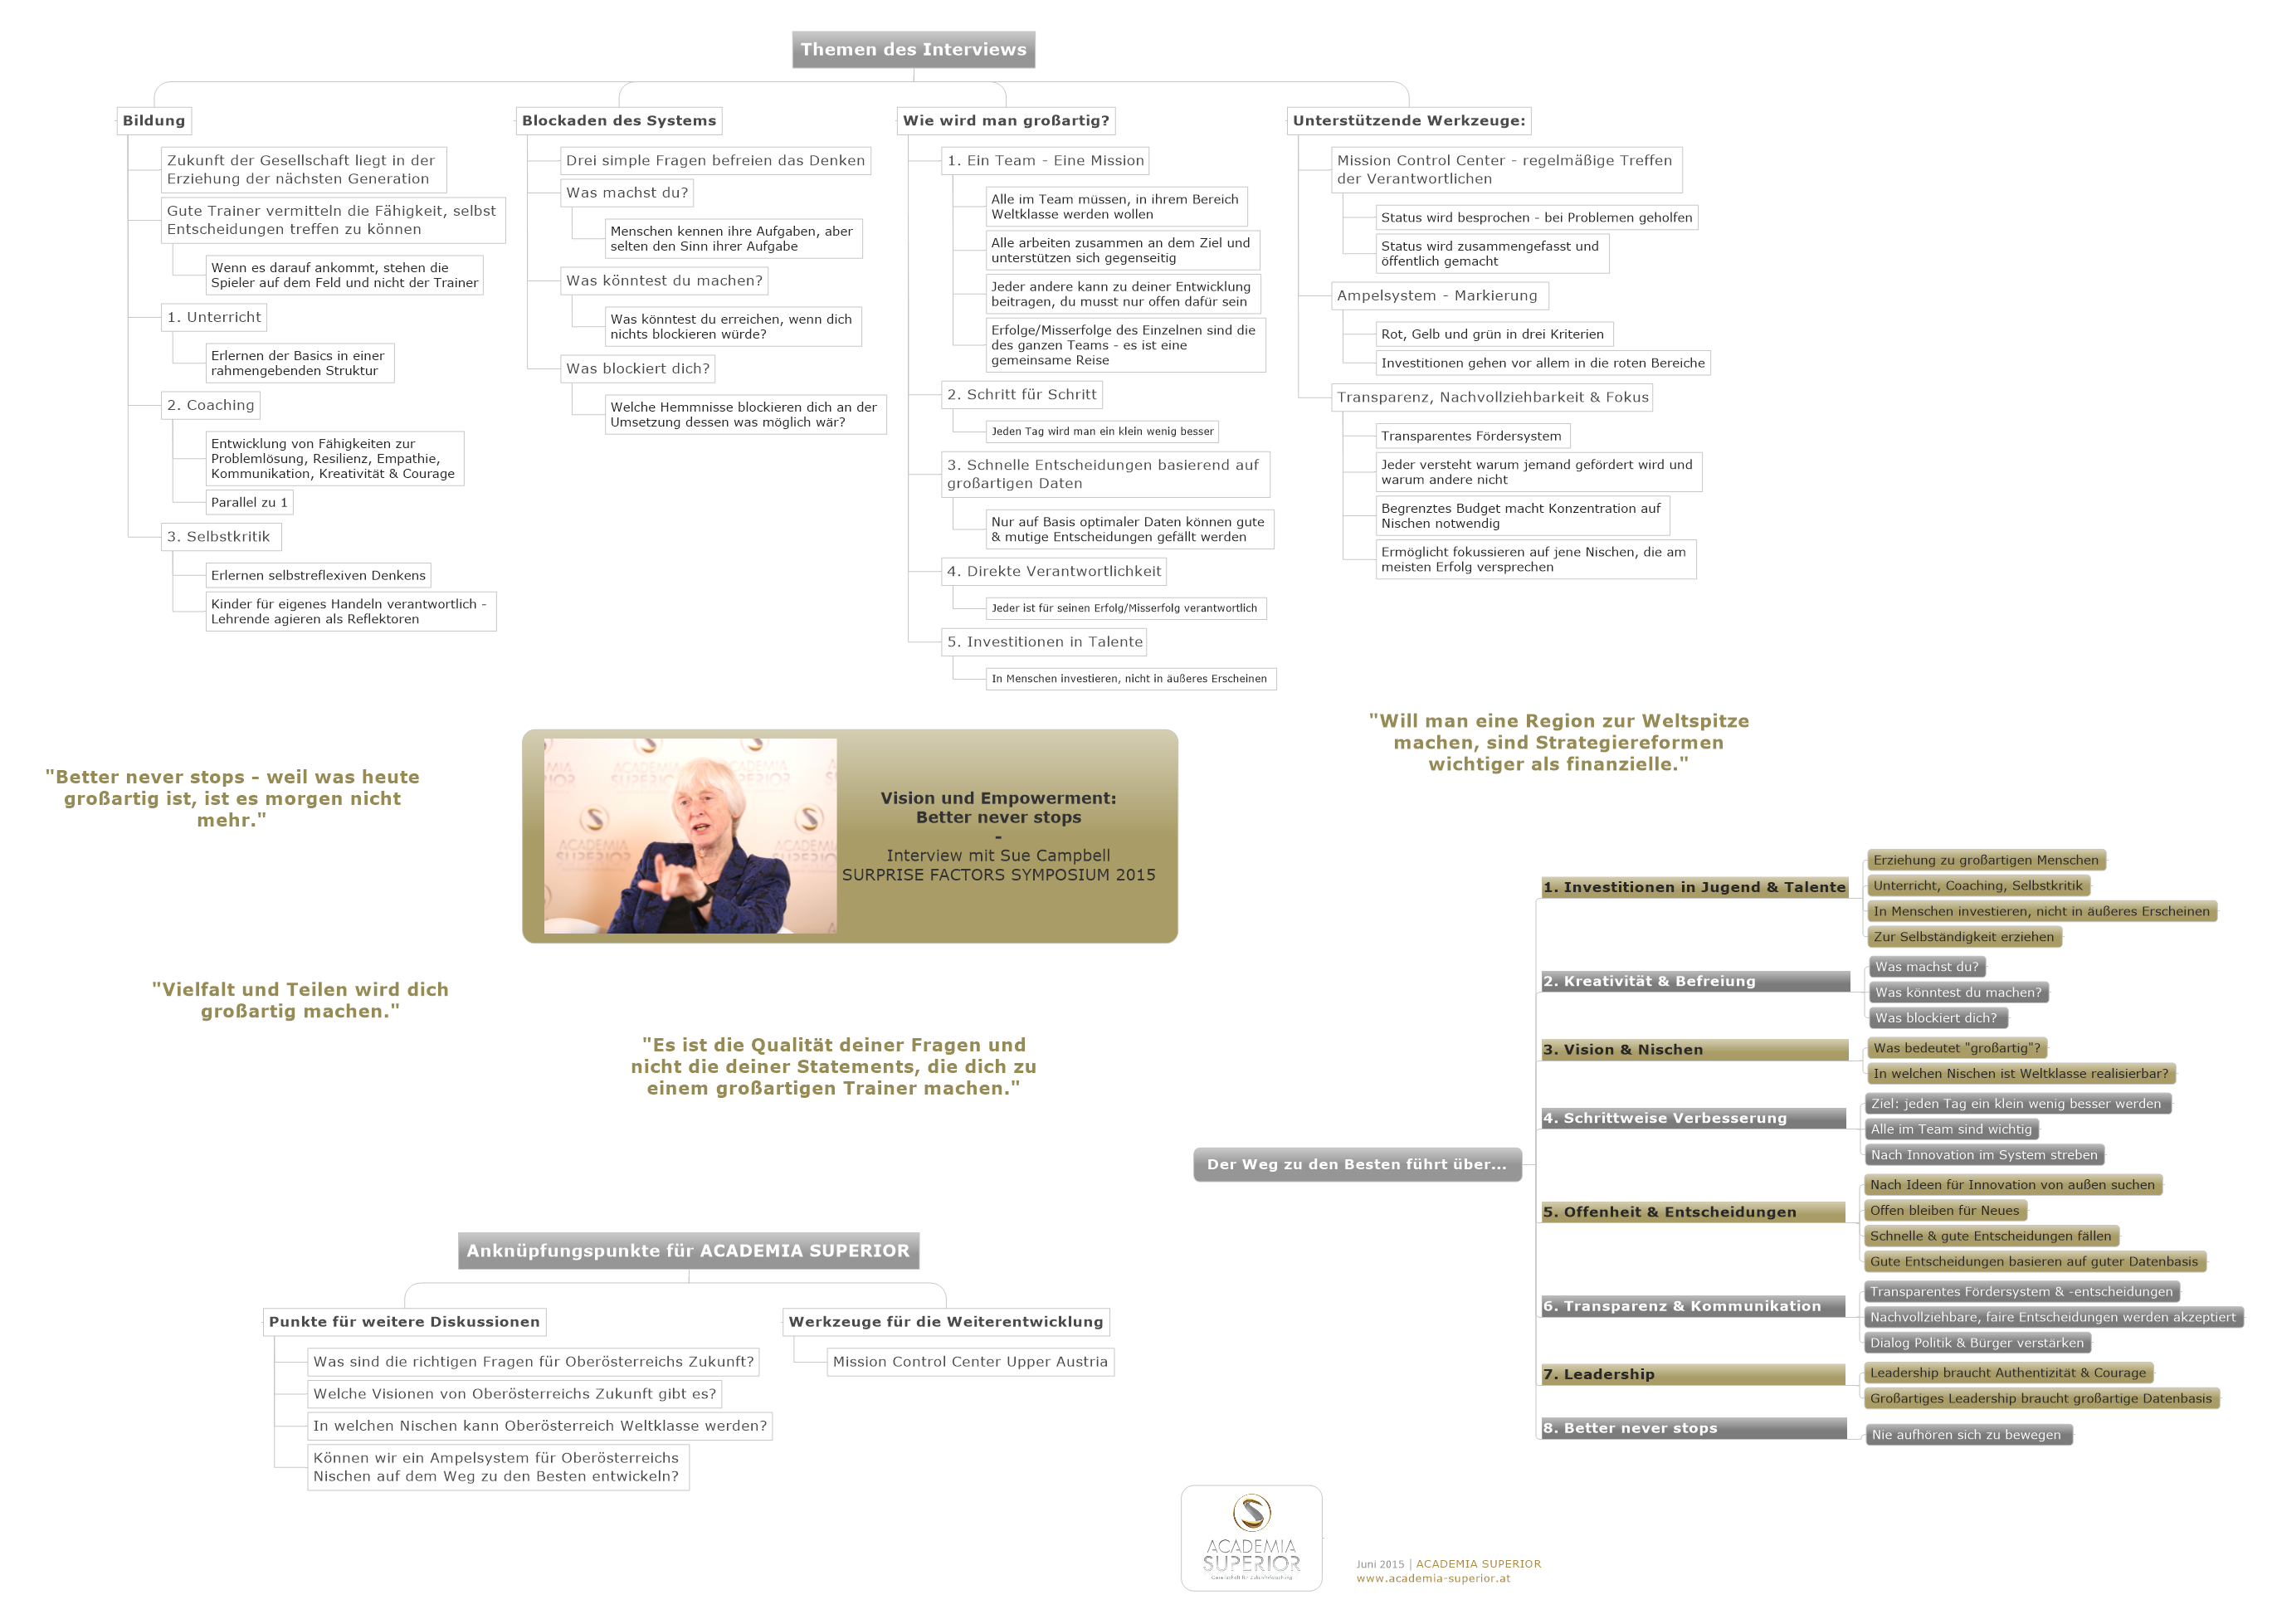 MindMap: Interview mit Sue Campbell (dt)